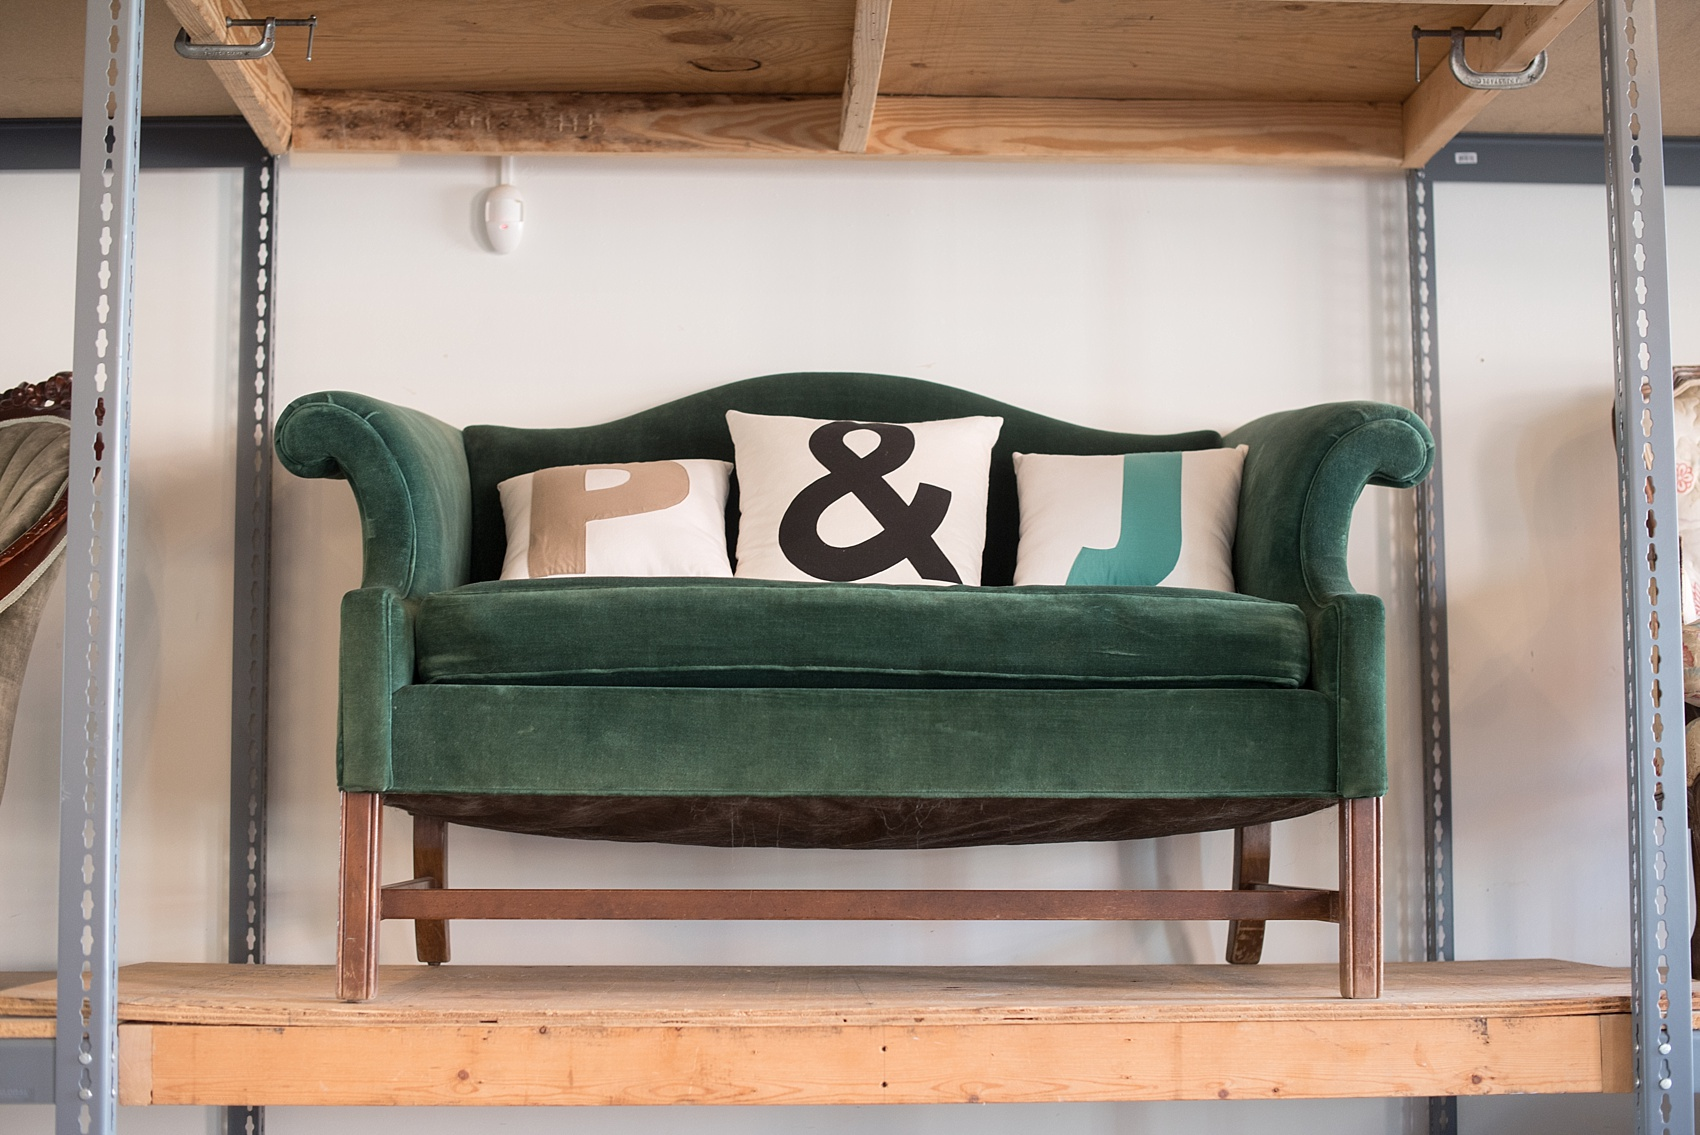 Delightful Mikkel Paige Photography Photos Of Vintage Furniture Renal Company Paisley  And Jade In Richmond, Virginia ...